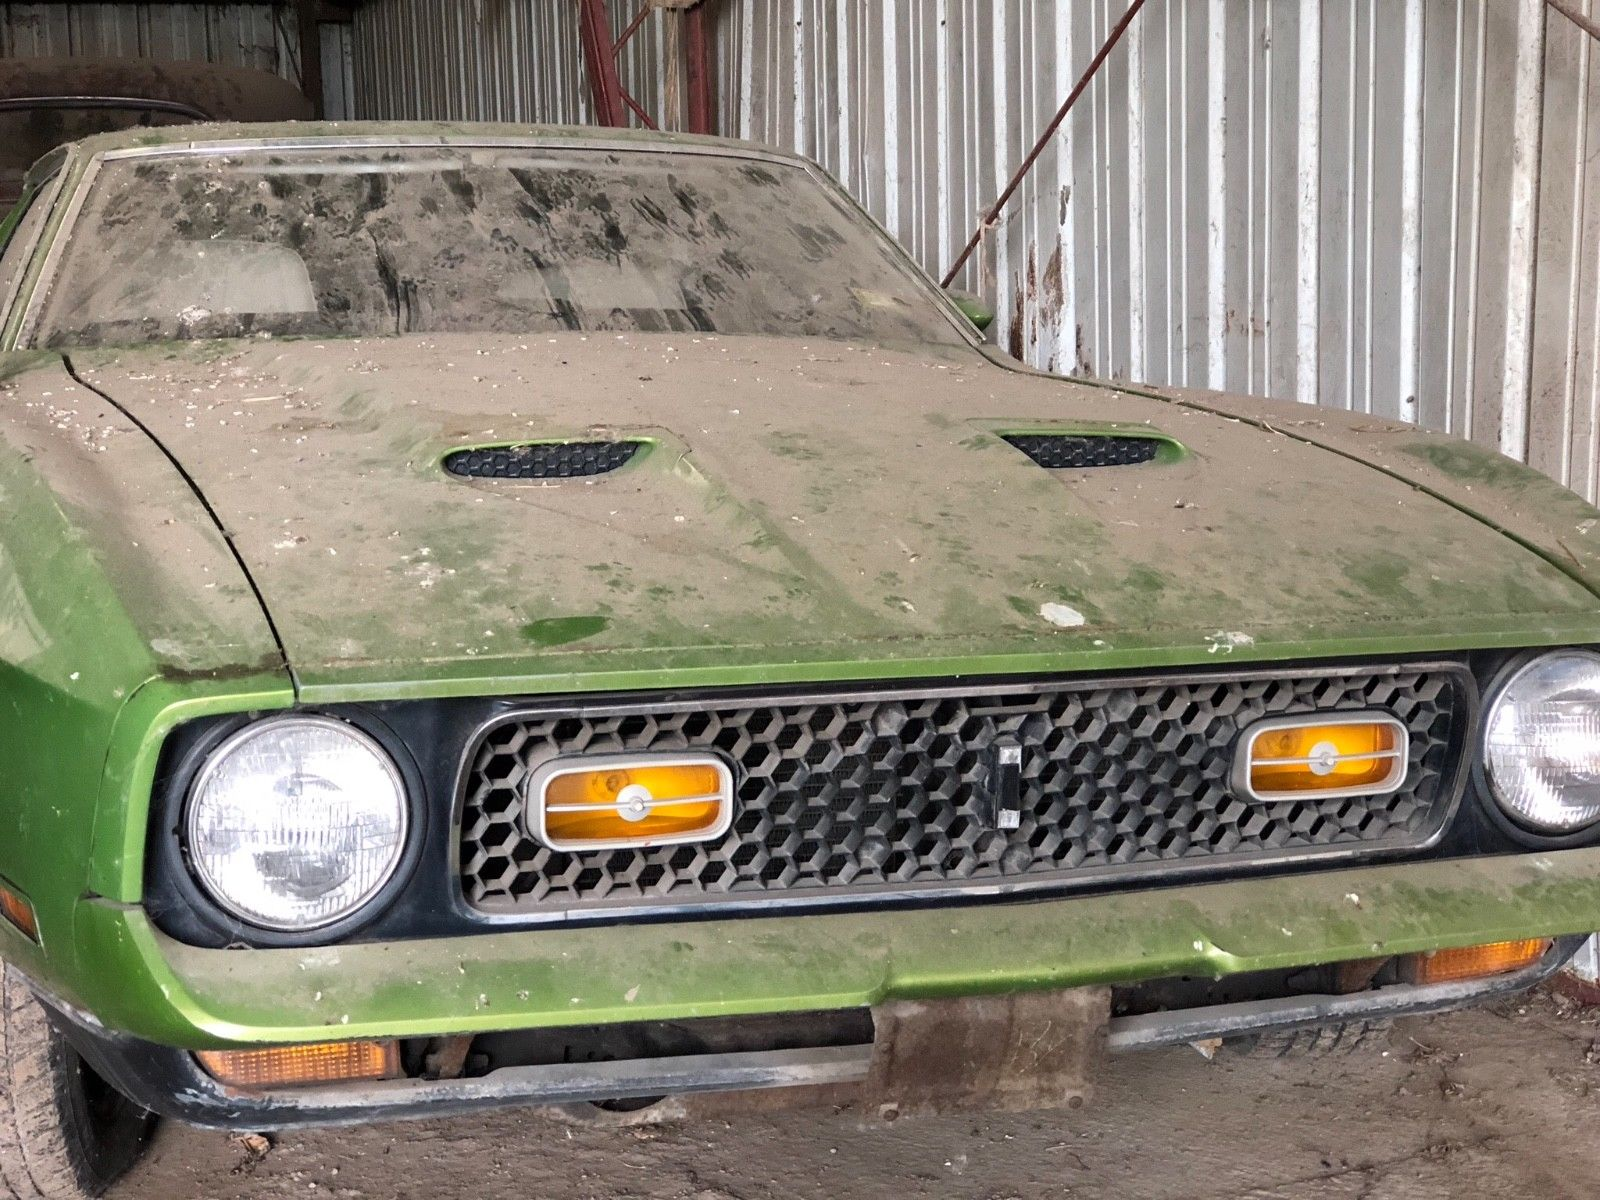 Awesome 1972 ford mustang mach 1 1972 ford mustang mach 1 q code cobra 4spd jet barn find 2018 2019